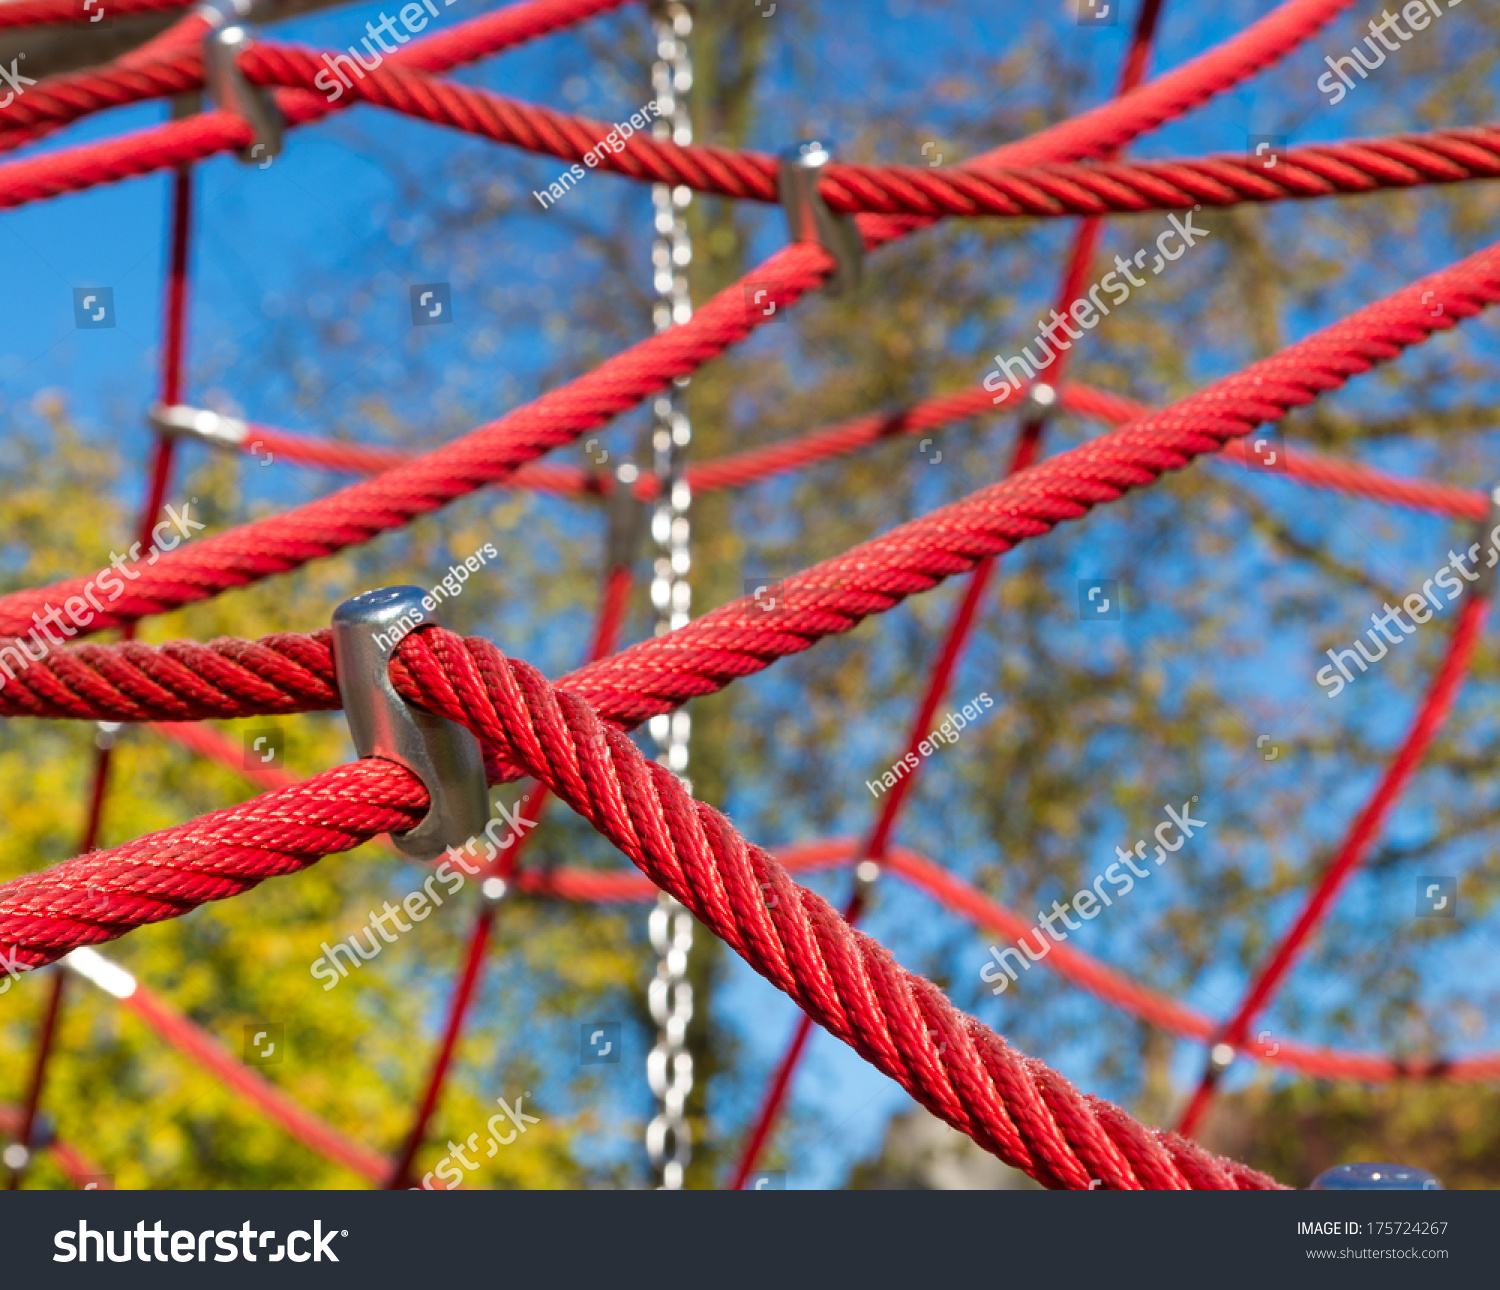 Red Ropes Part Child Climbing Frame Stock Photo (Royalty Free ...